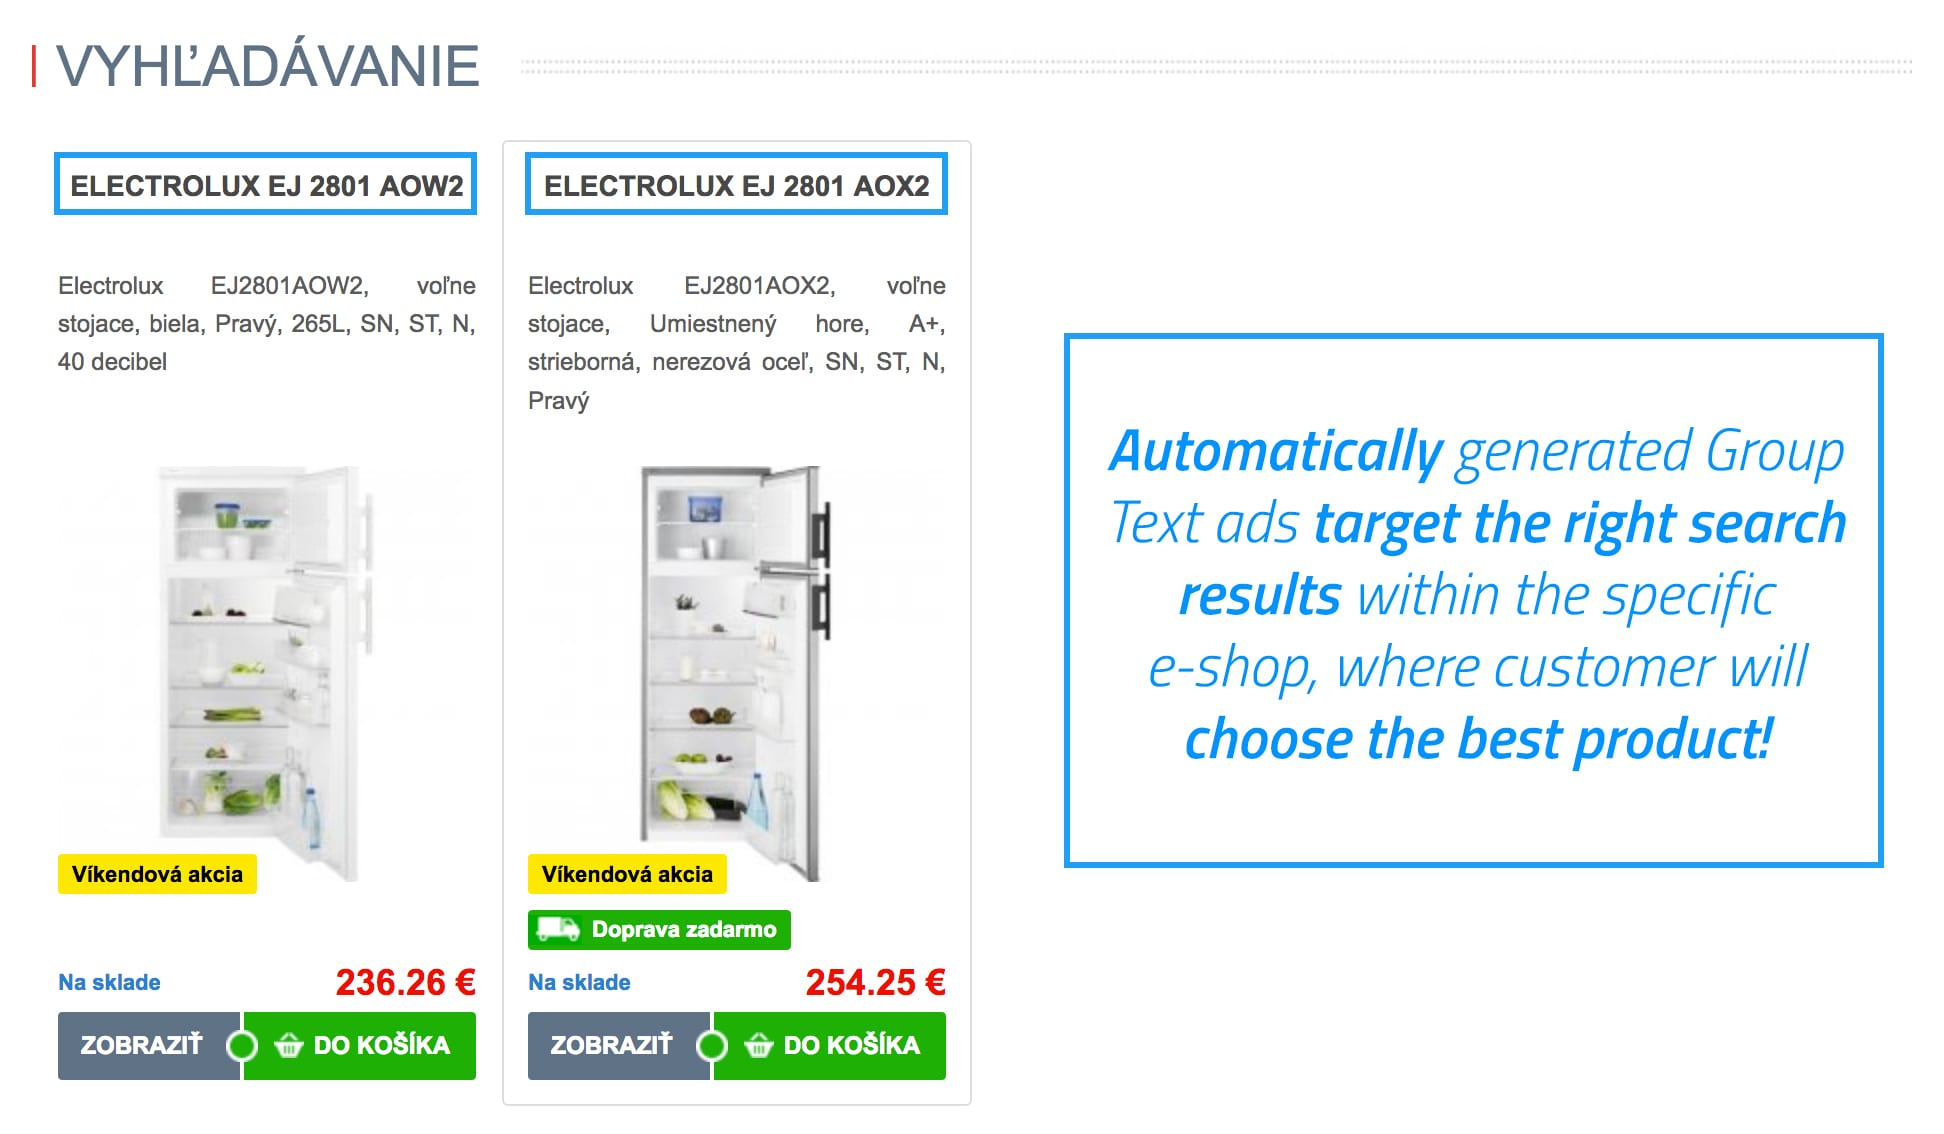 Automatically generated Product-Group Text ads will target the right fulltext search results within eshop, where customer will choose the best product